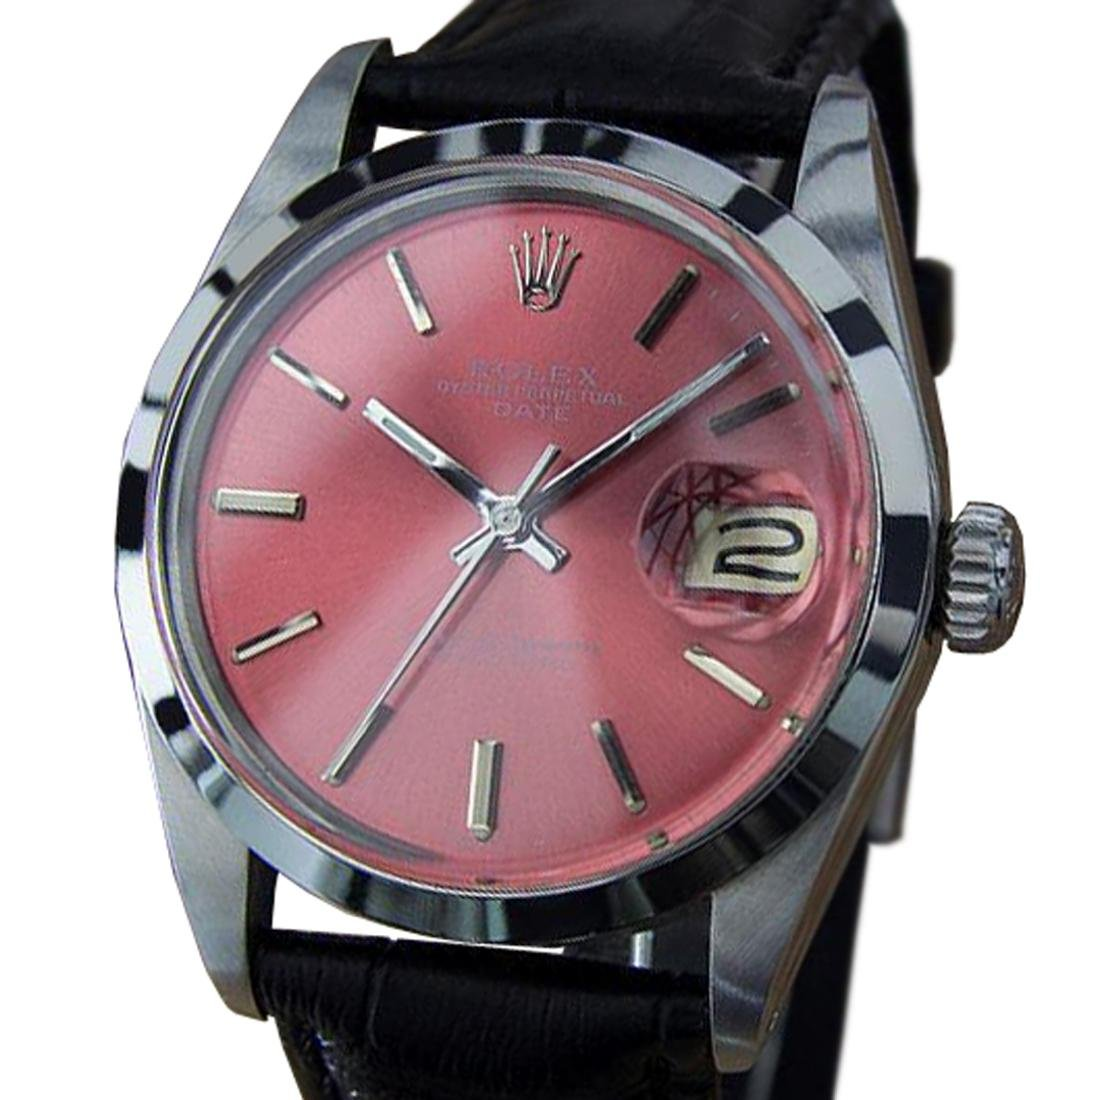 *Rolex Oyster 1500 Swiss Made Automatic Watch With